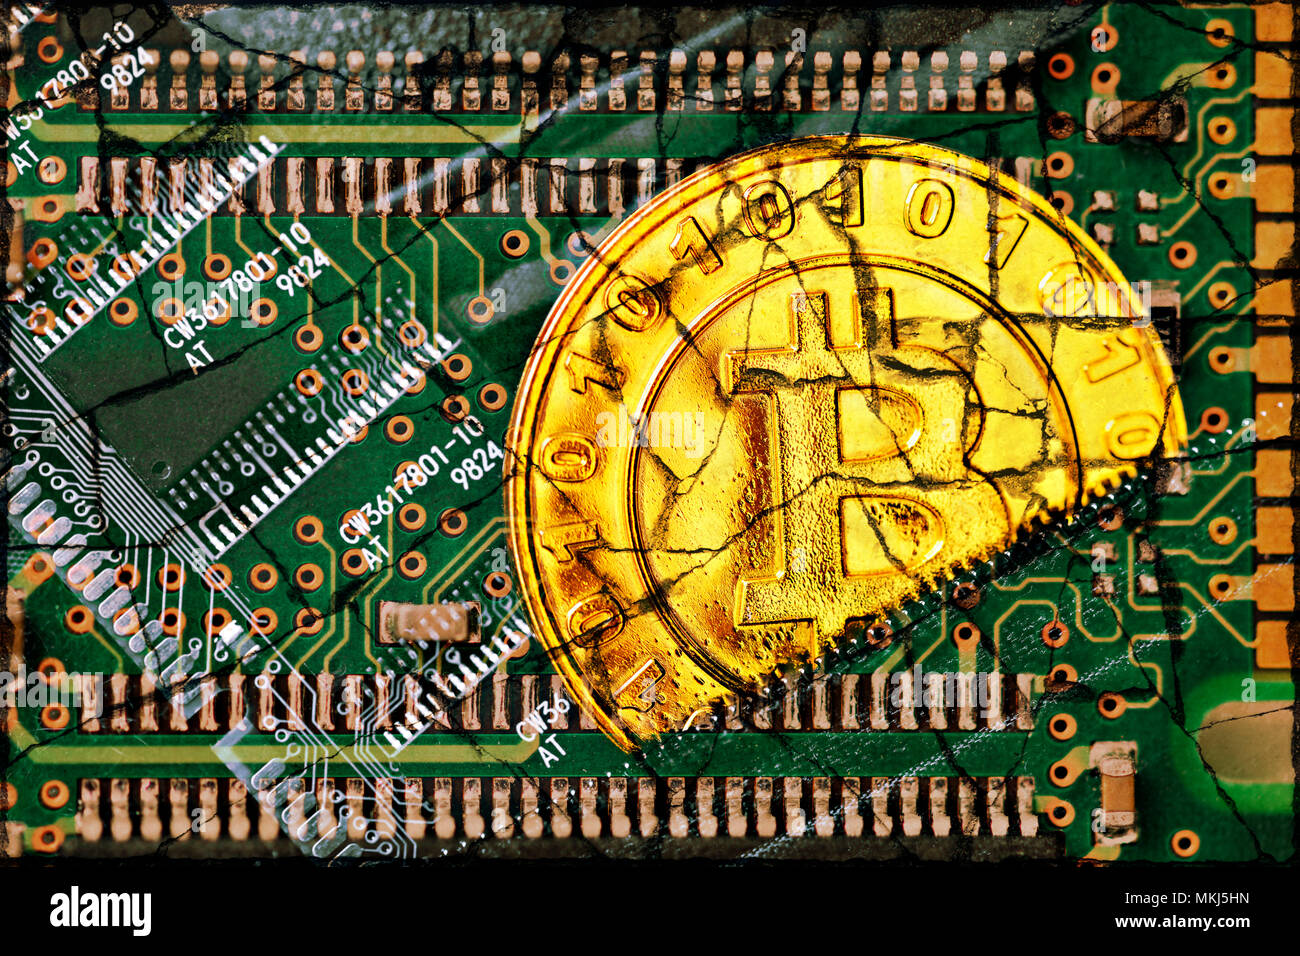 Coin with bitcoin characters and computer circuit board with cracks, loss in value of the crypto-Currency Bitcoin, Münze mit Bitcoin-Zeichen und Compu Stock Photo